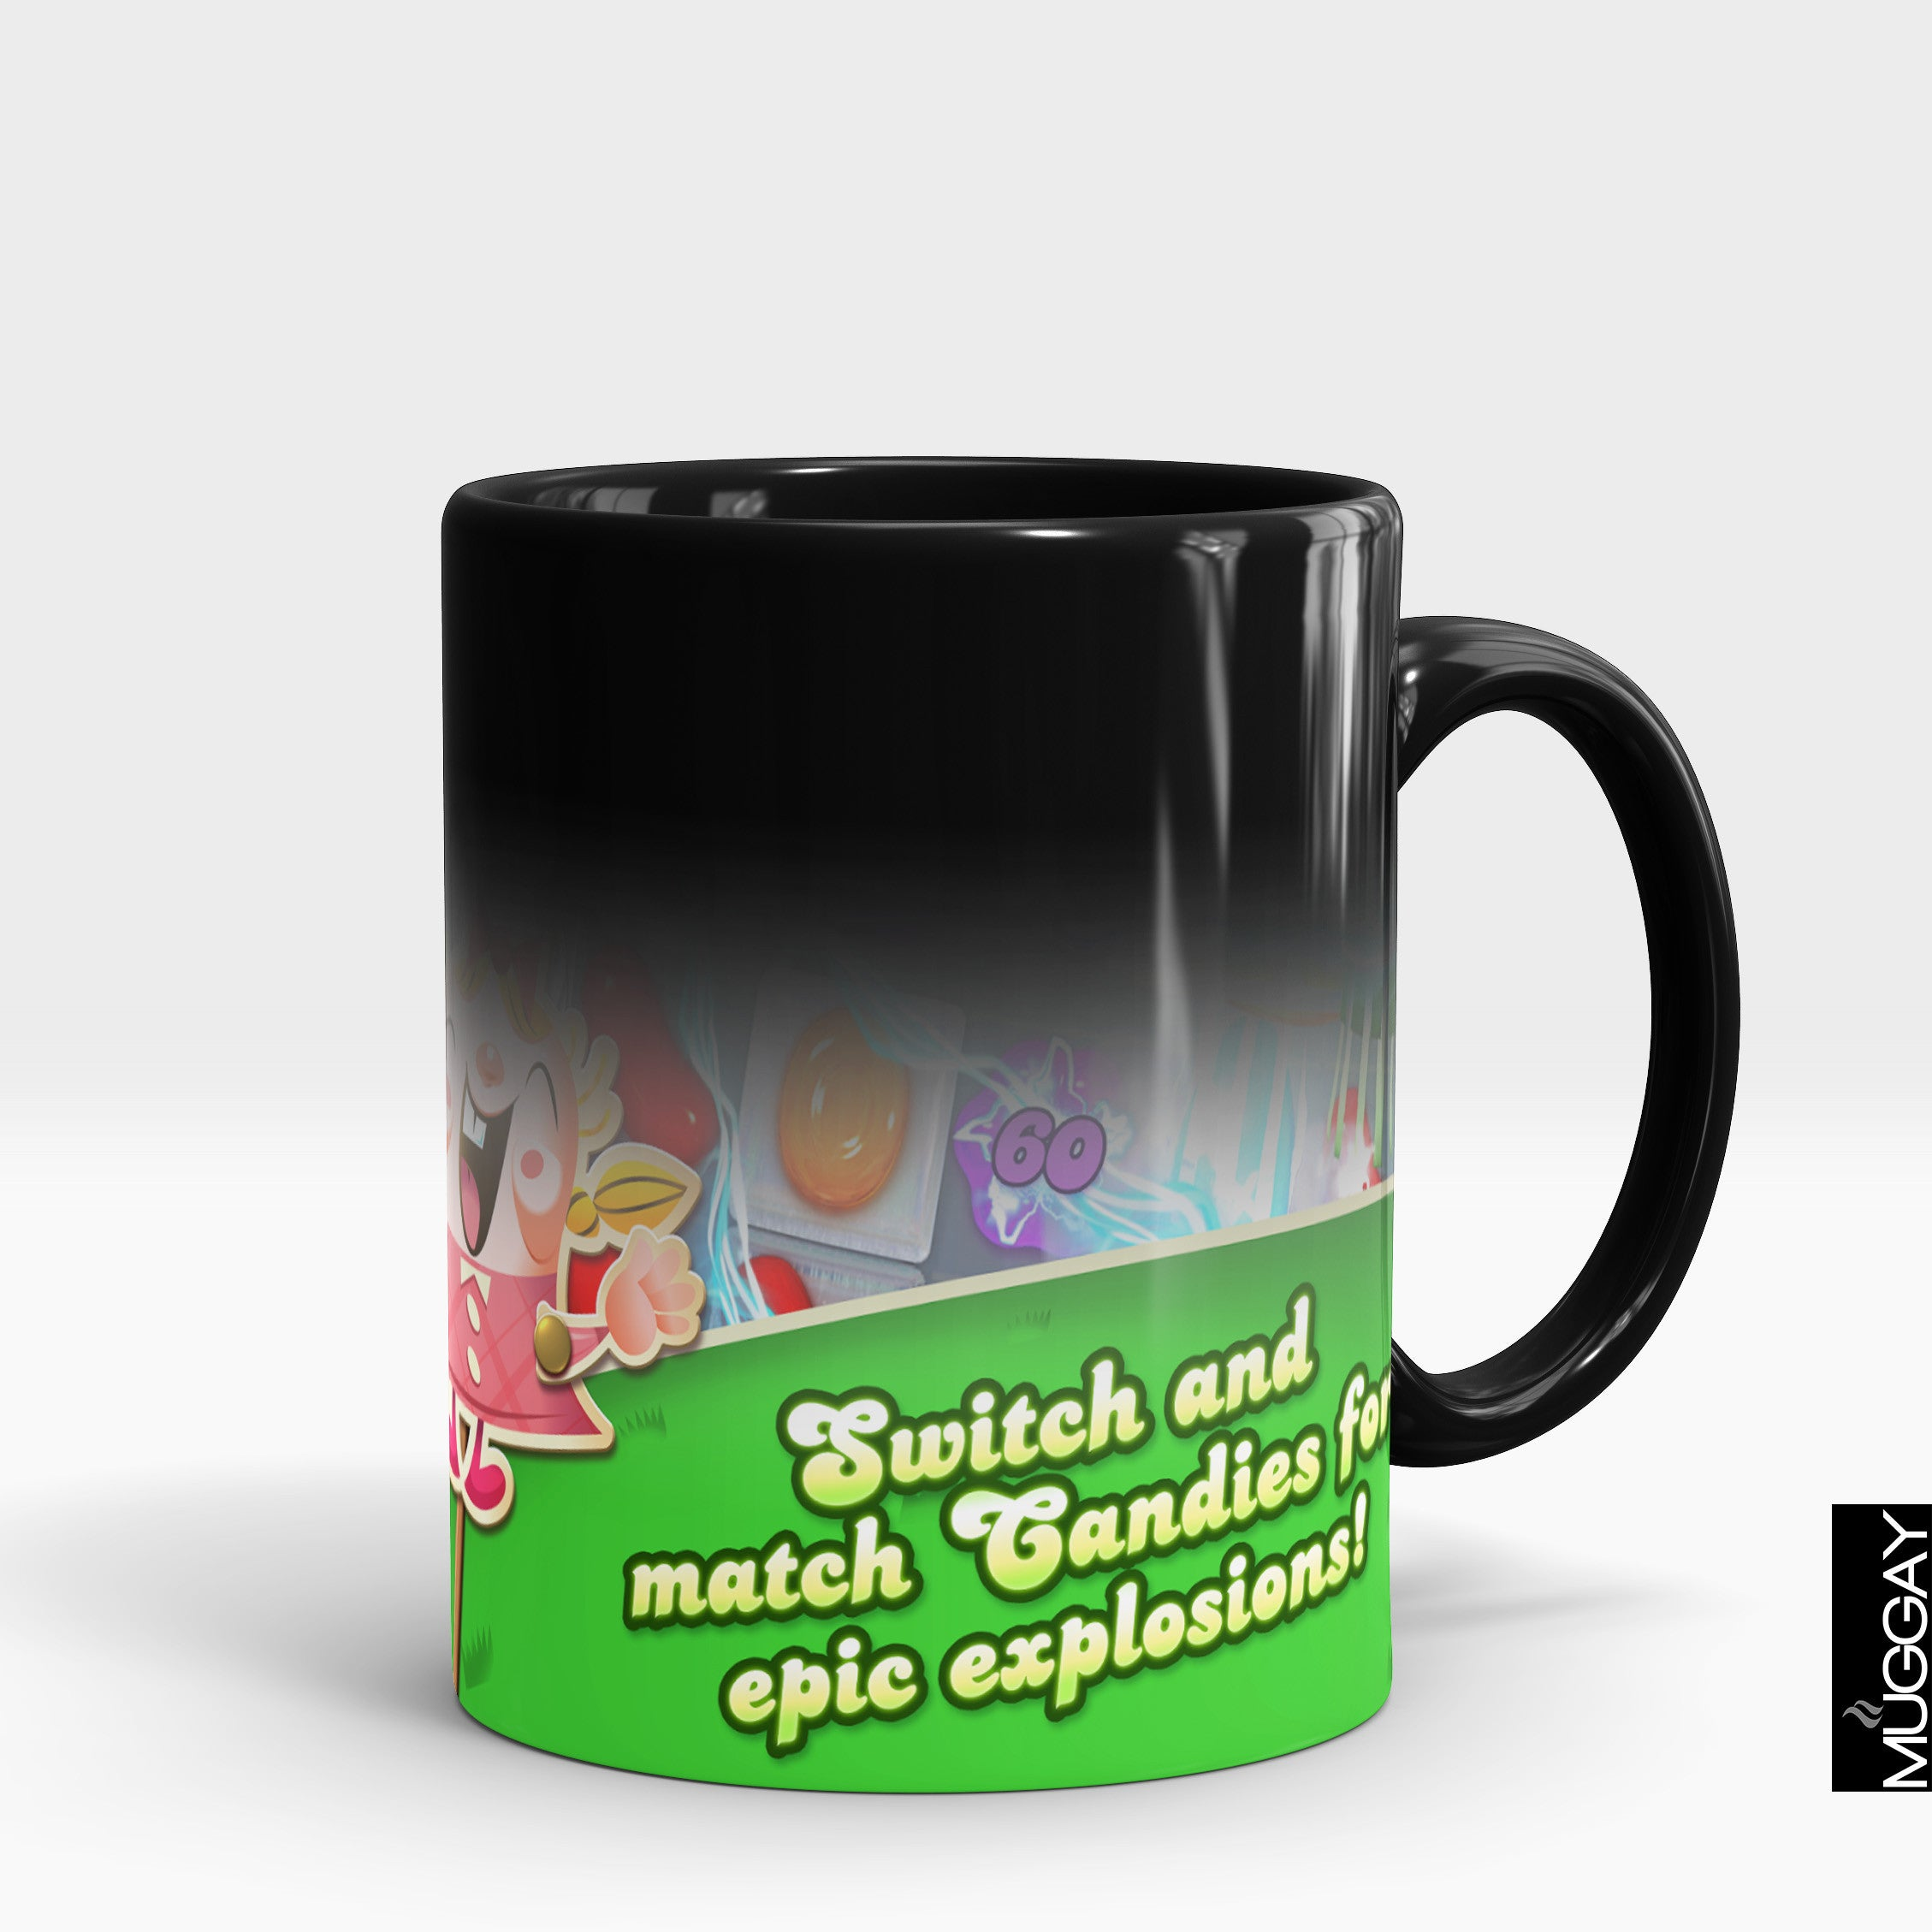 Candy crush Design candy1 - Muggay.com - Mugs - Printing shop - truck Art mugs - Mug printing - Customized printing - Digital printing - Muggay